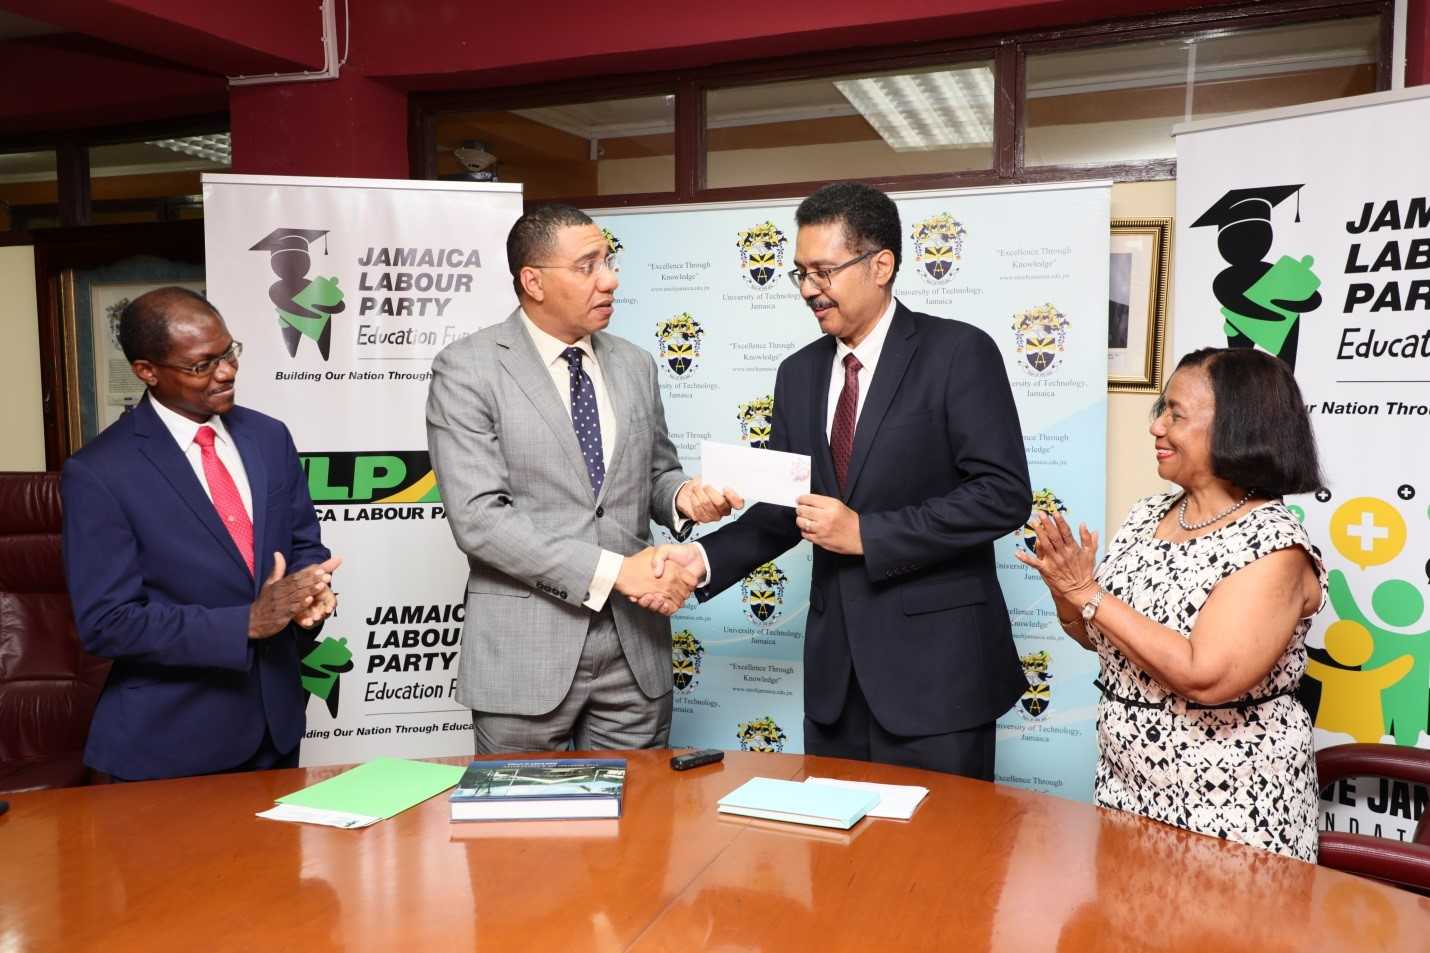 Prime Minister Donates $2.5M to UTech, Jamaica for Students in Need